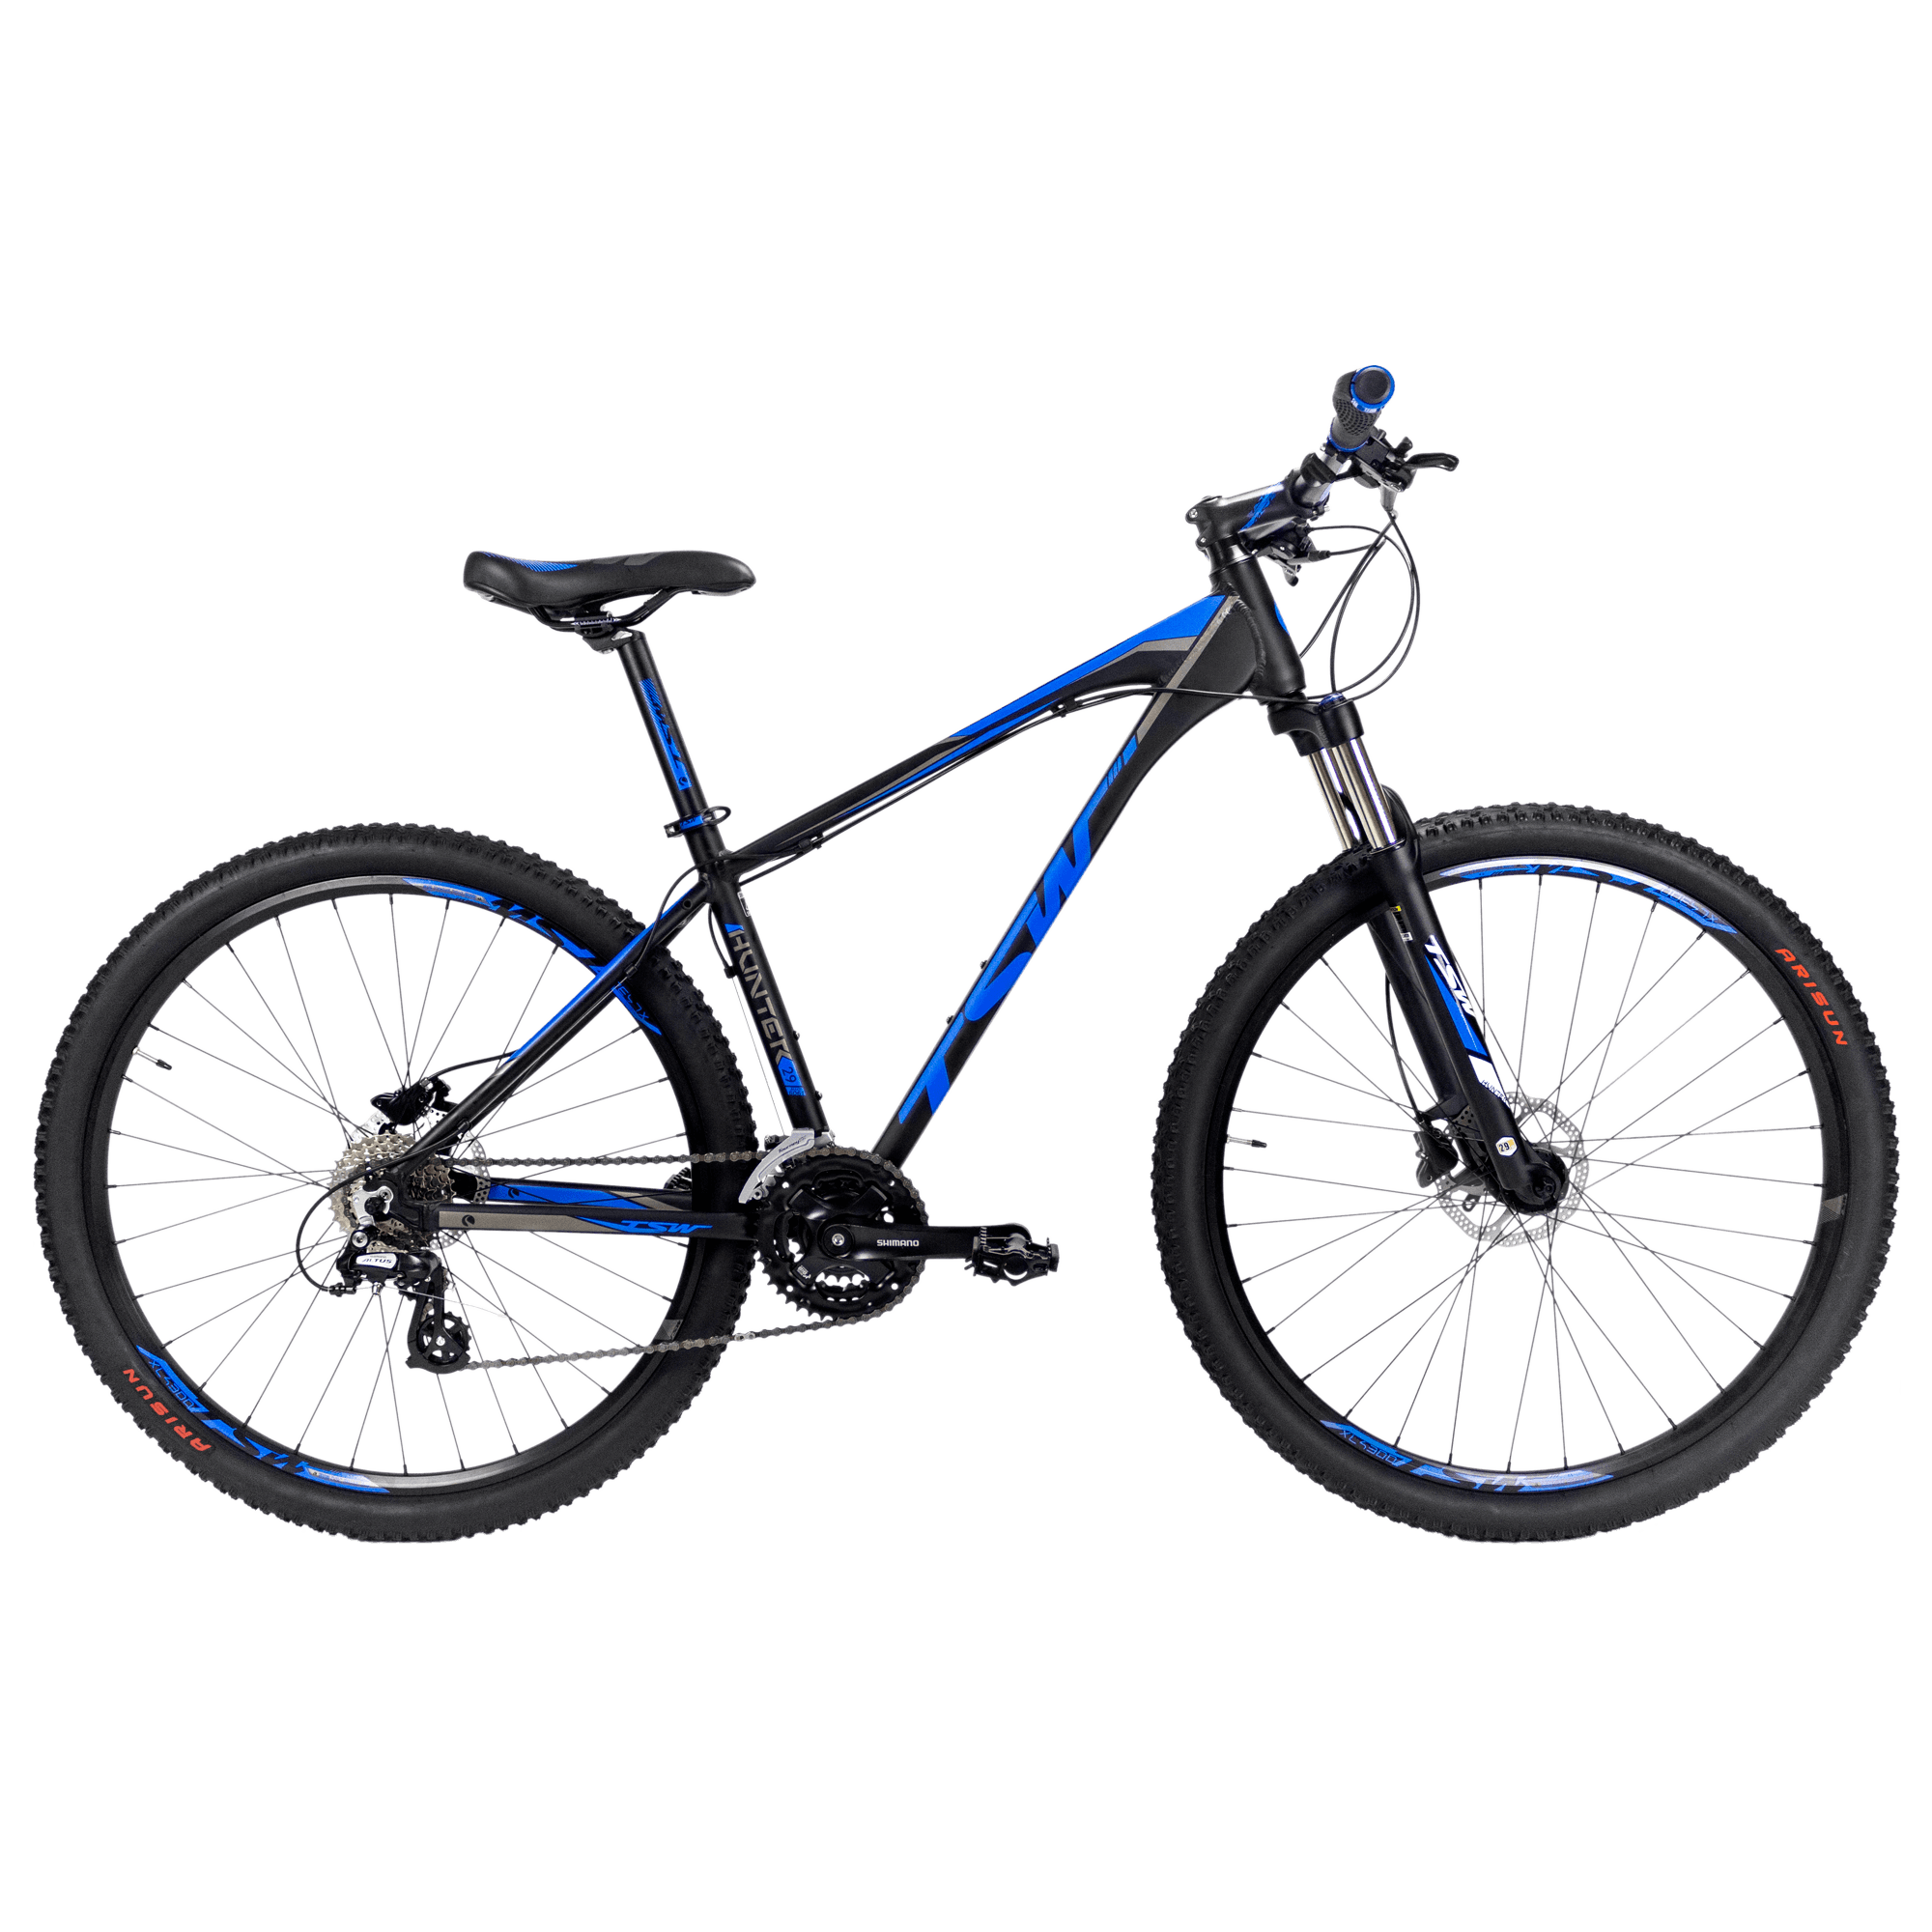 bicicleta hunter 09319